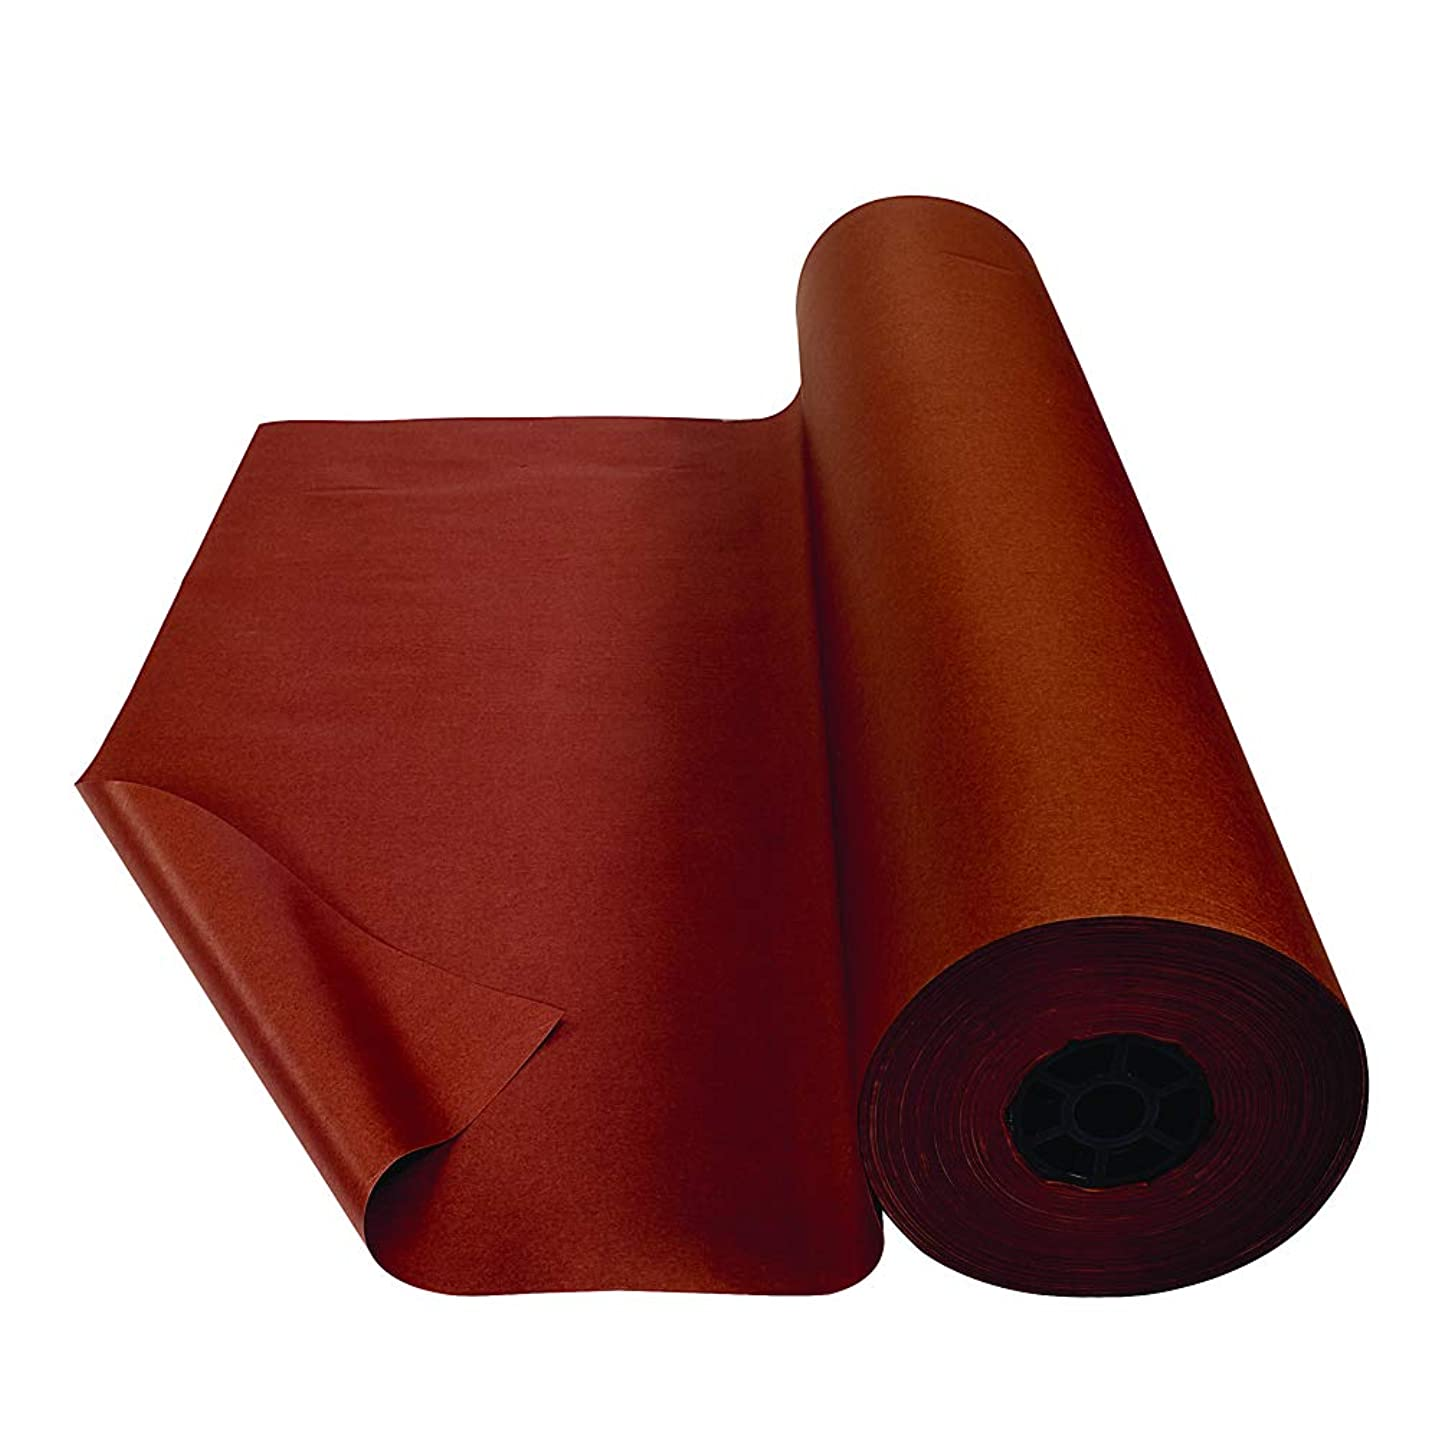 Colorations DSBR Dual Surface Paper Roll, Brown